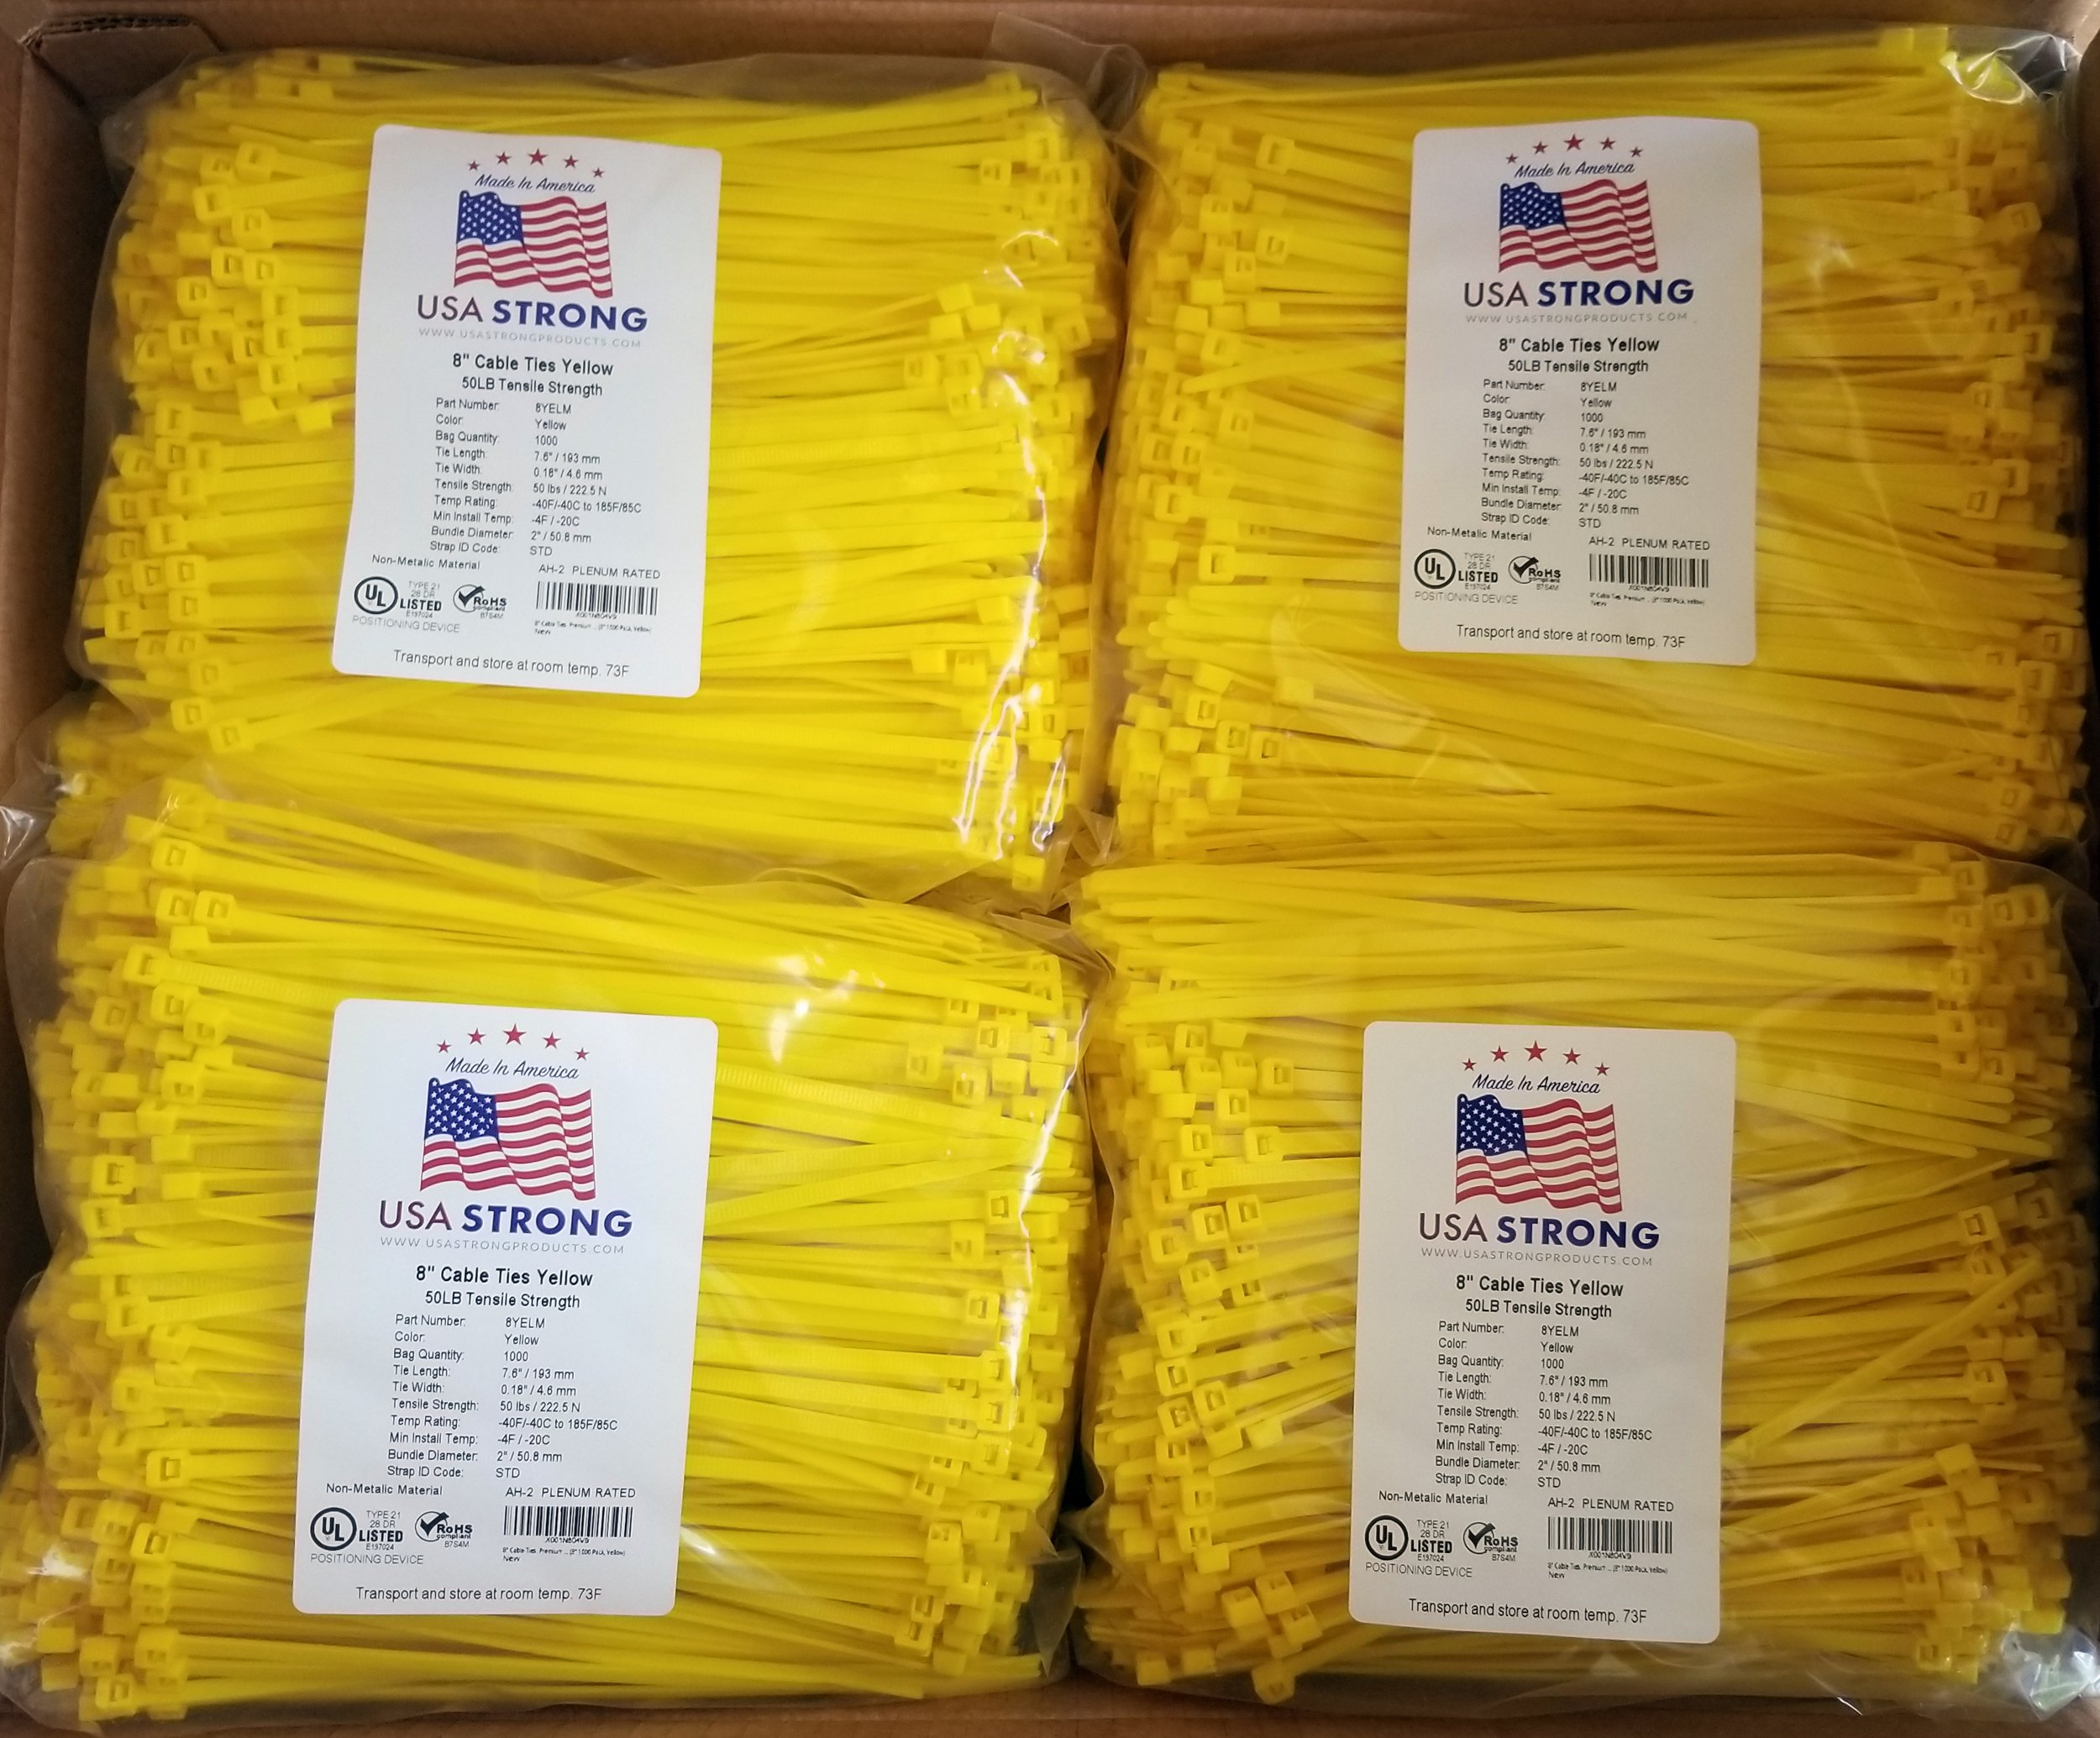 "8"" Cable Ties. Premium Nylon Wire Management Zip-ties. Several colors available in 1,000 piece pack or Bulk Wholesale Case Quantity. 50 LB Tensile. USA Strong Cable Ties (8'' Bulk 10,000 Case, Yellow) by USA Strong Cable Ties"